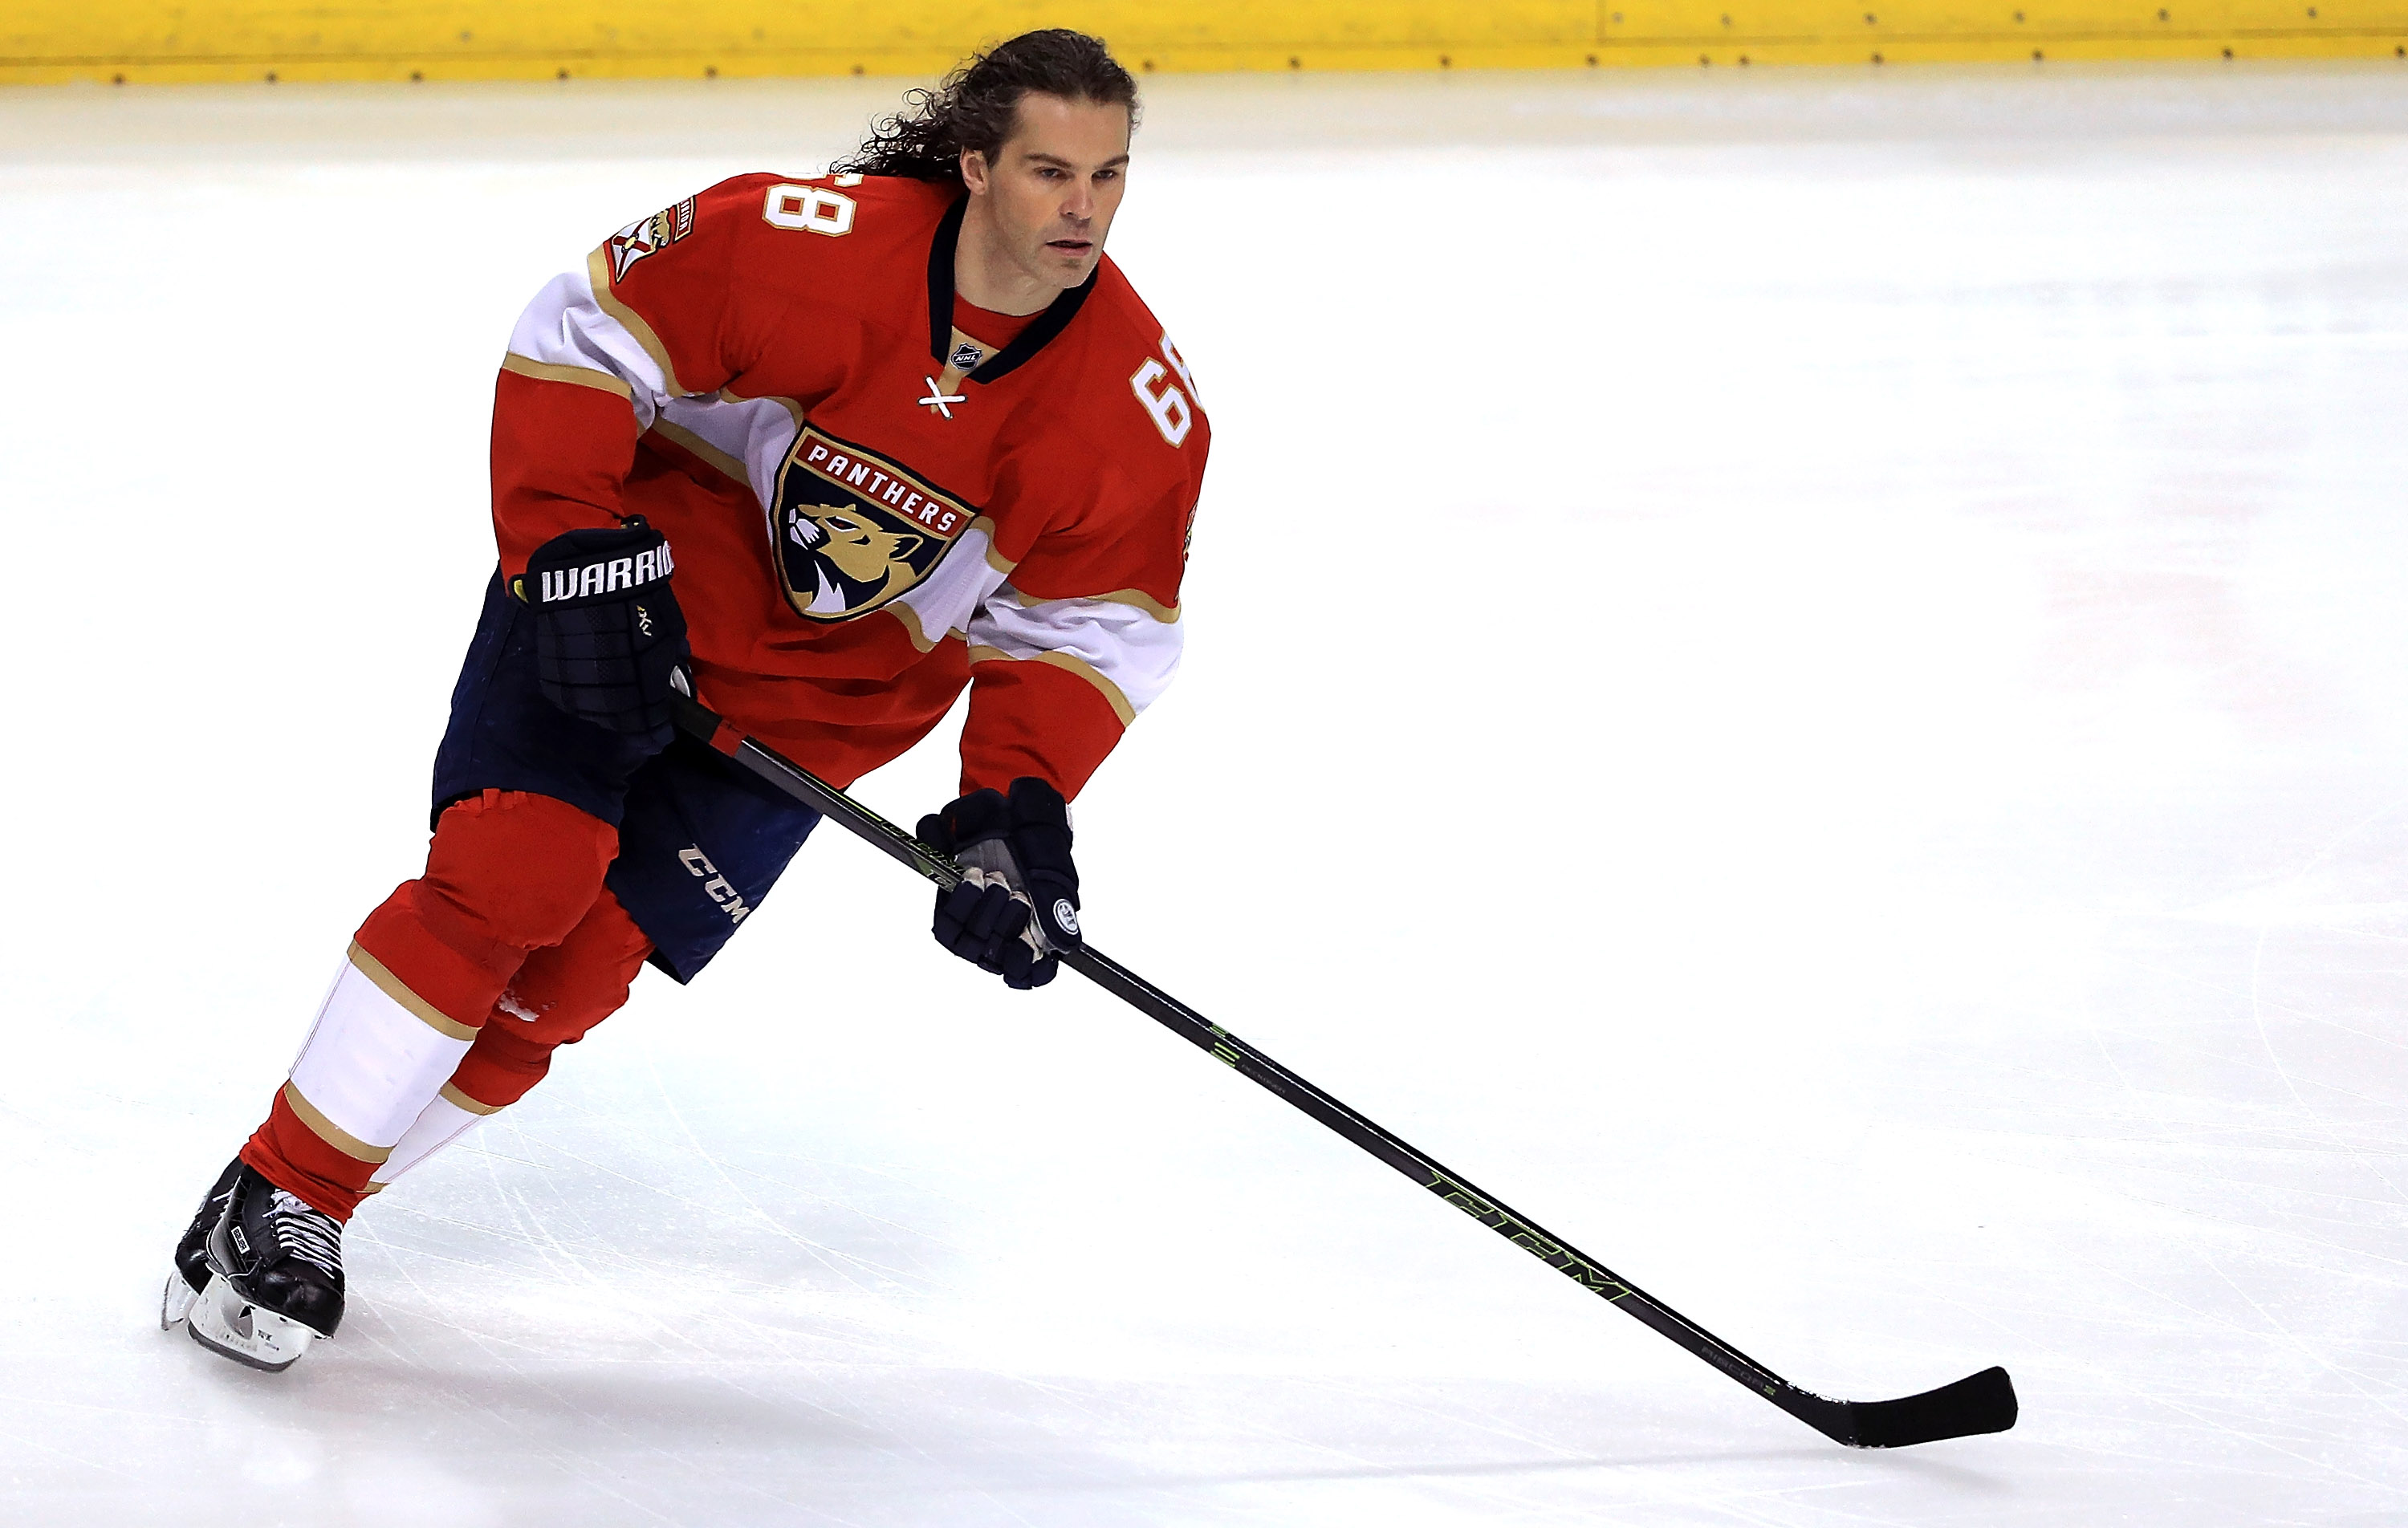 Floridas Jaromir Jagr continues to put up points against the Sabres. (Getty Images)